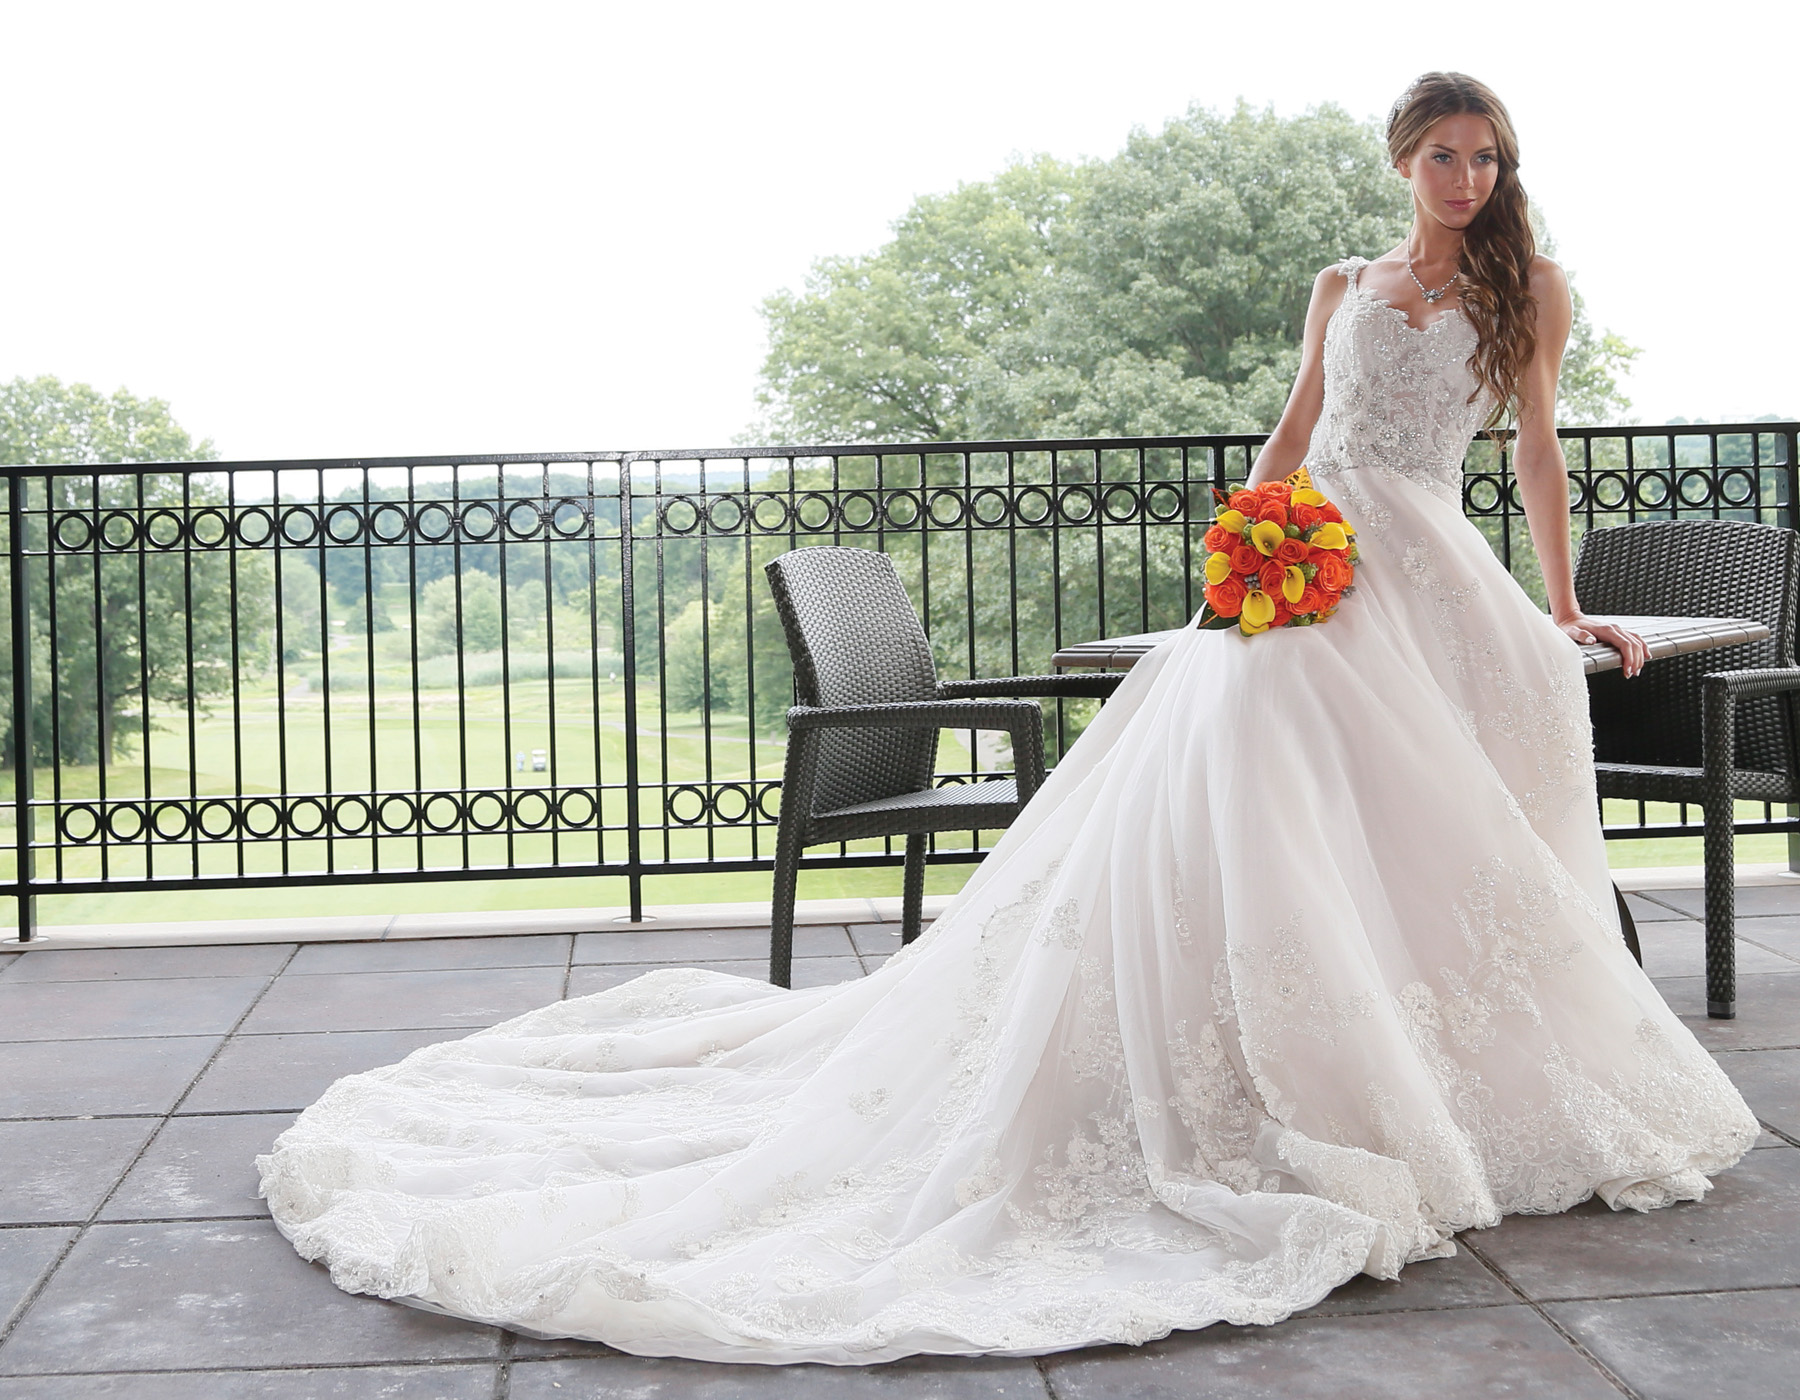 Bridal Wedding Gowns New York, New Jersey - Trains